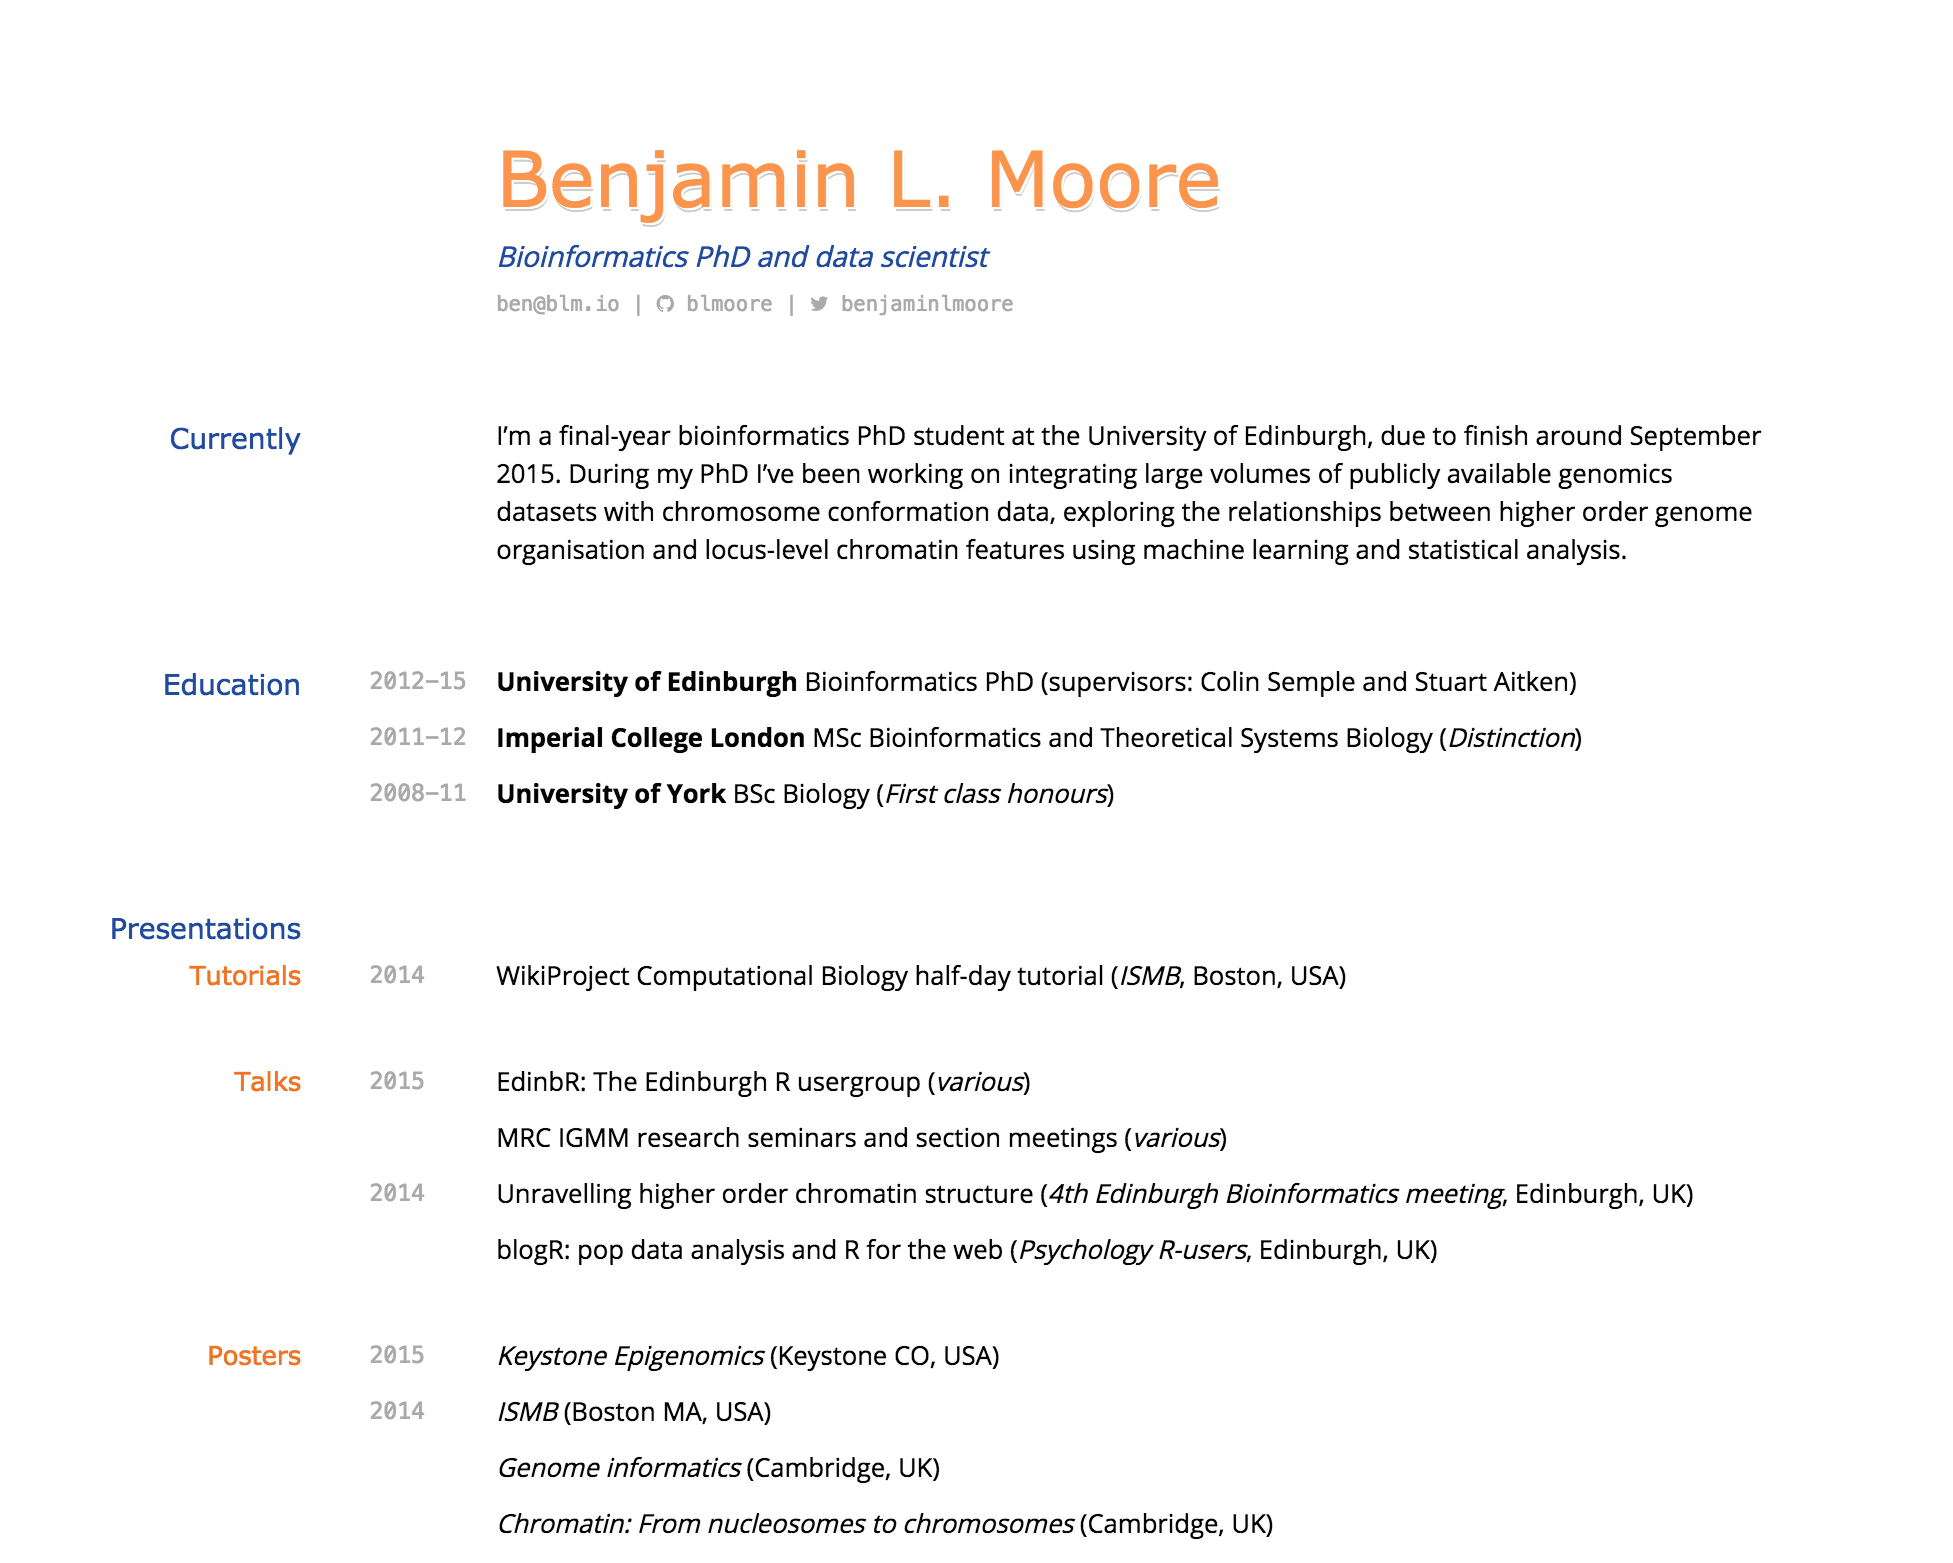 building an academic cv in markdown · blm